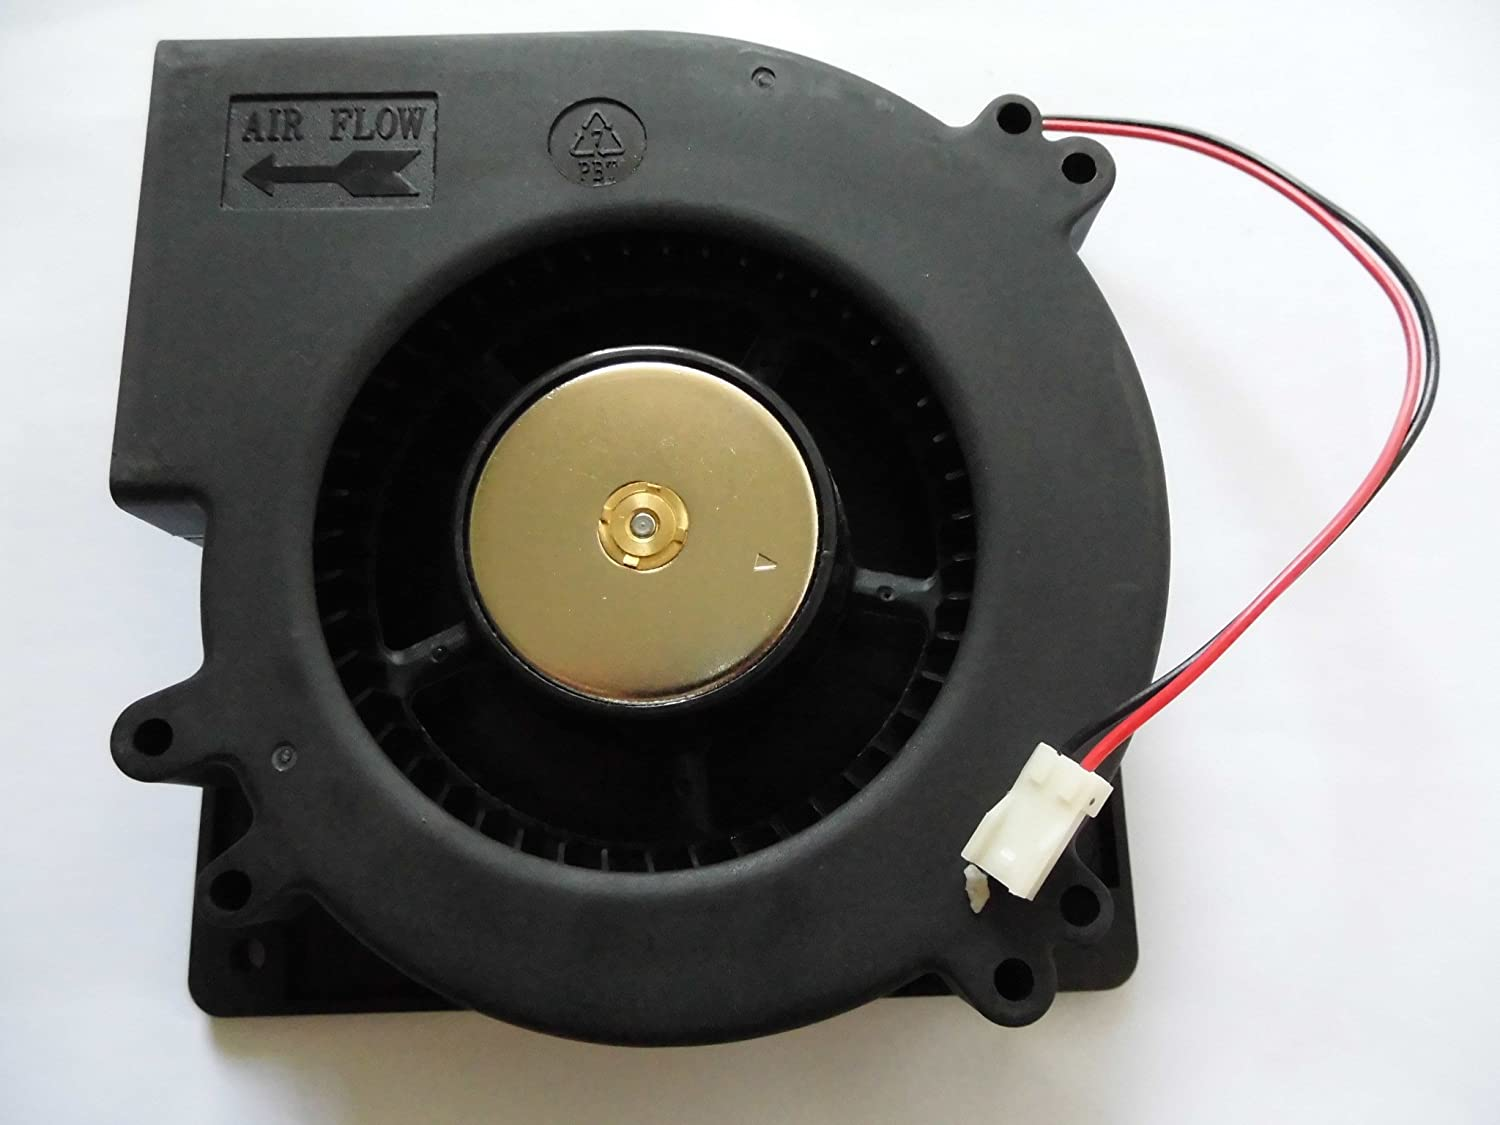 Zyvpee 120x120x32mm BFB1224HH 12cm 24V 0.8A 2Wire Inverter Fan